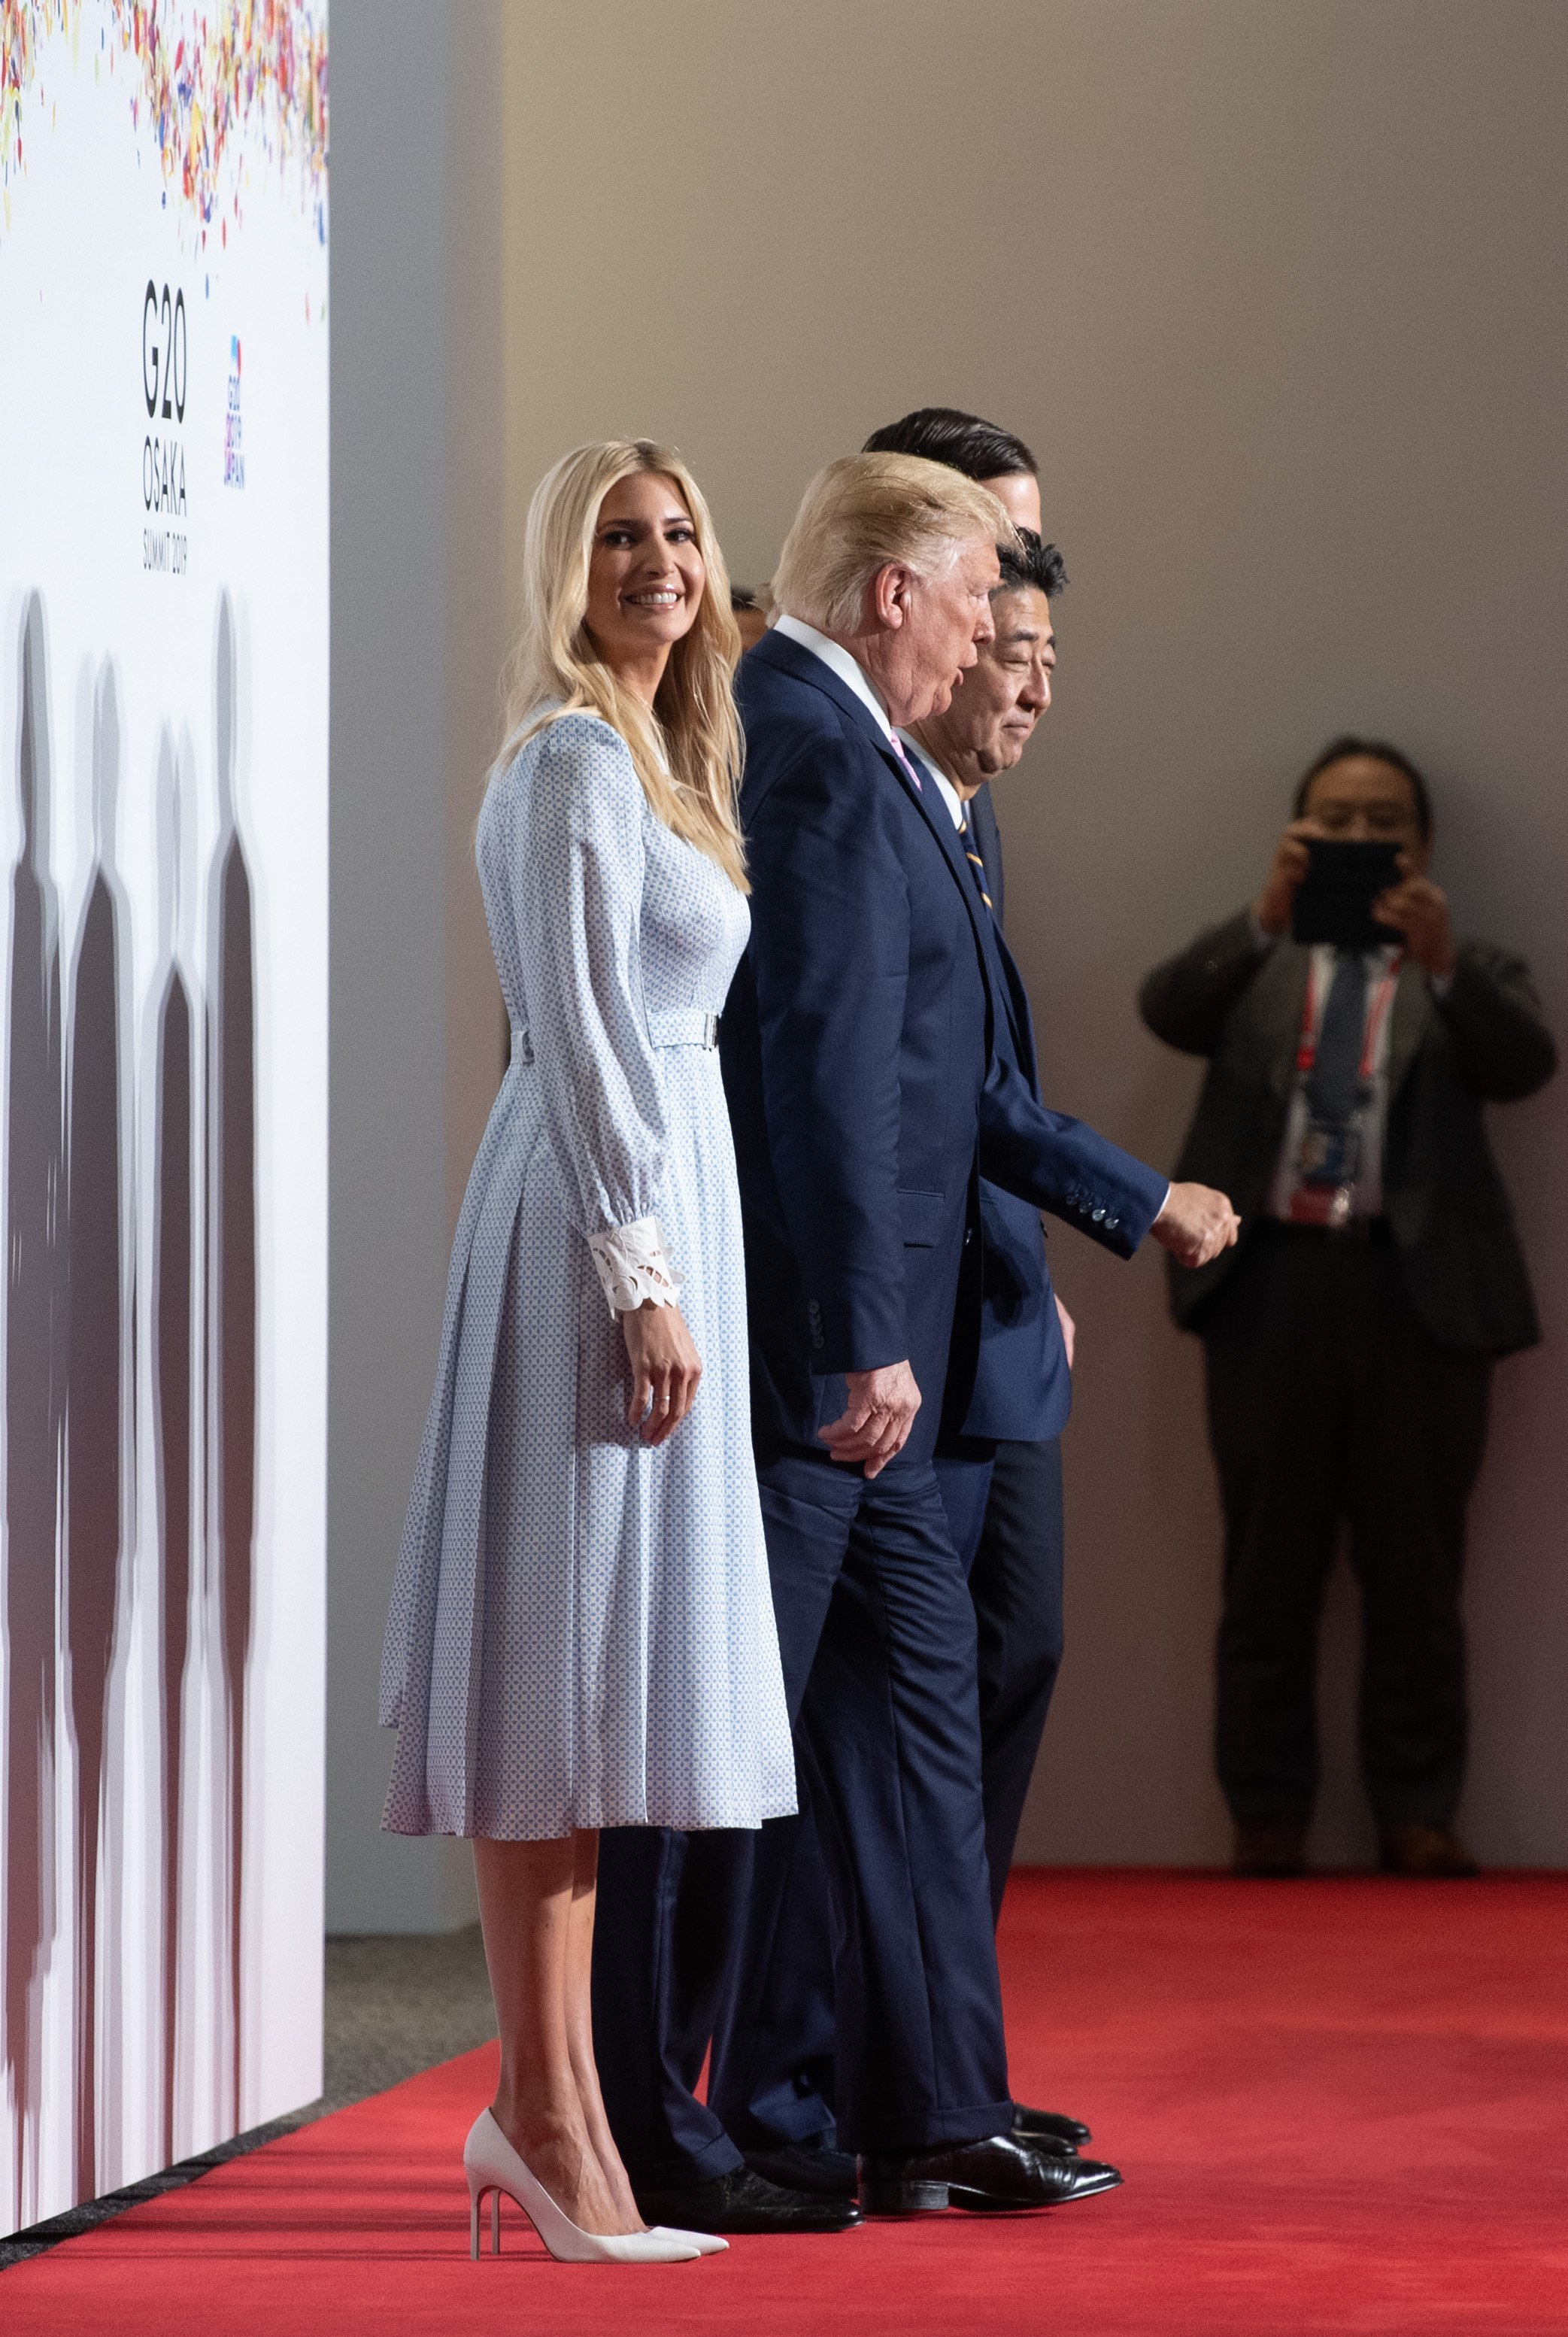 Ivanka Trump with Donald Trump and Japan's Prime Minister Shinzo Abe posing for a group photo at the G20 summit in Osaka, Japan | Photo: Getty Images